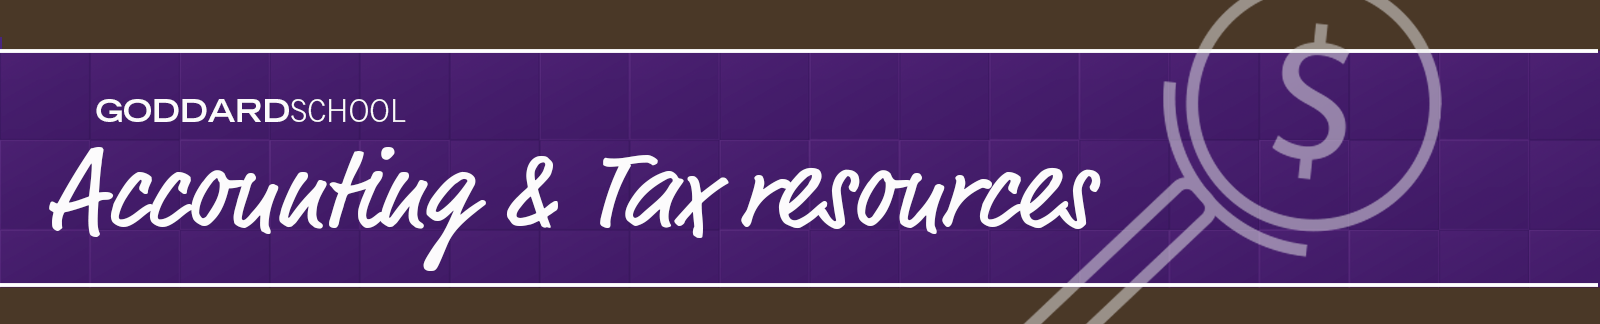 Accounting & tax resources